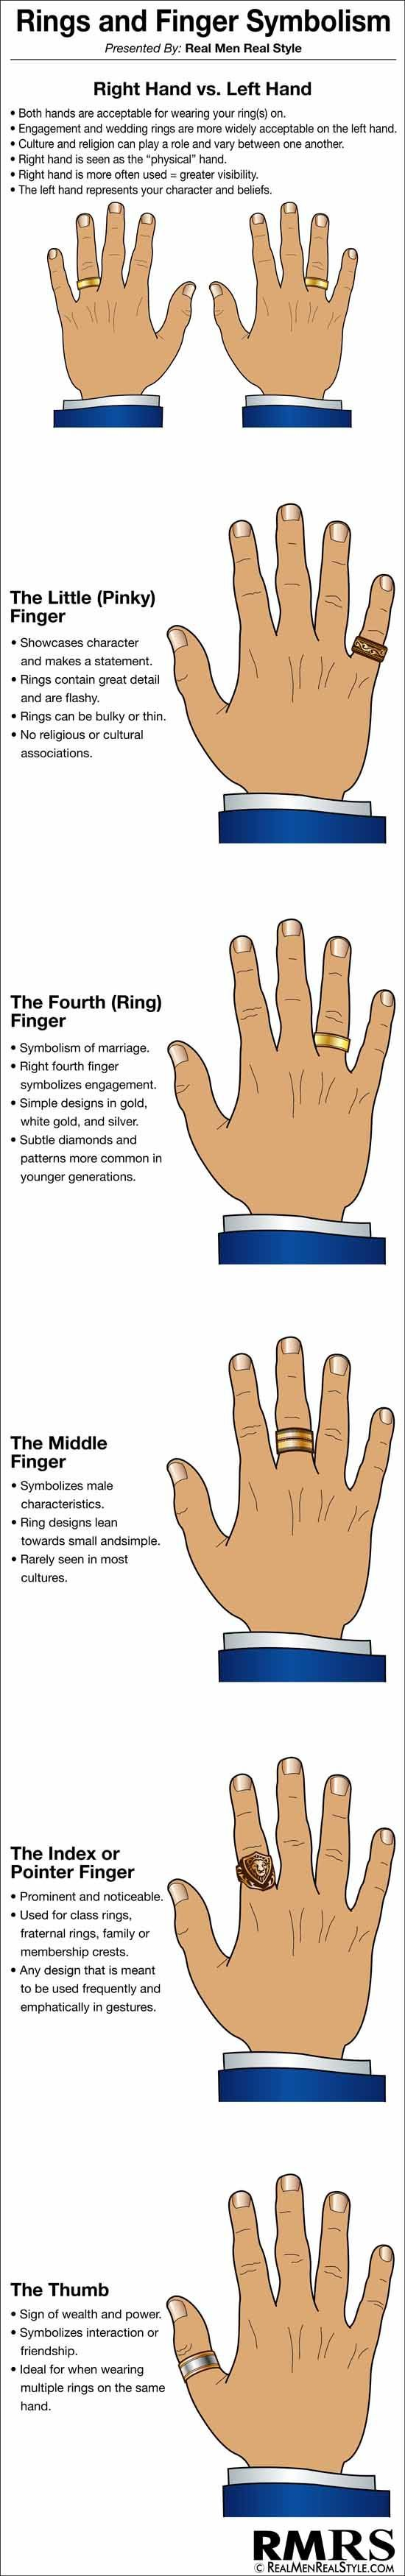 Ring Finger Symbolism Infographic Life Quotes Pinterest Ring